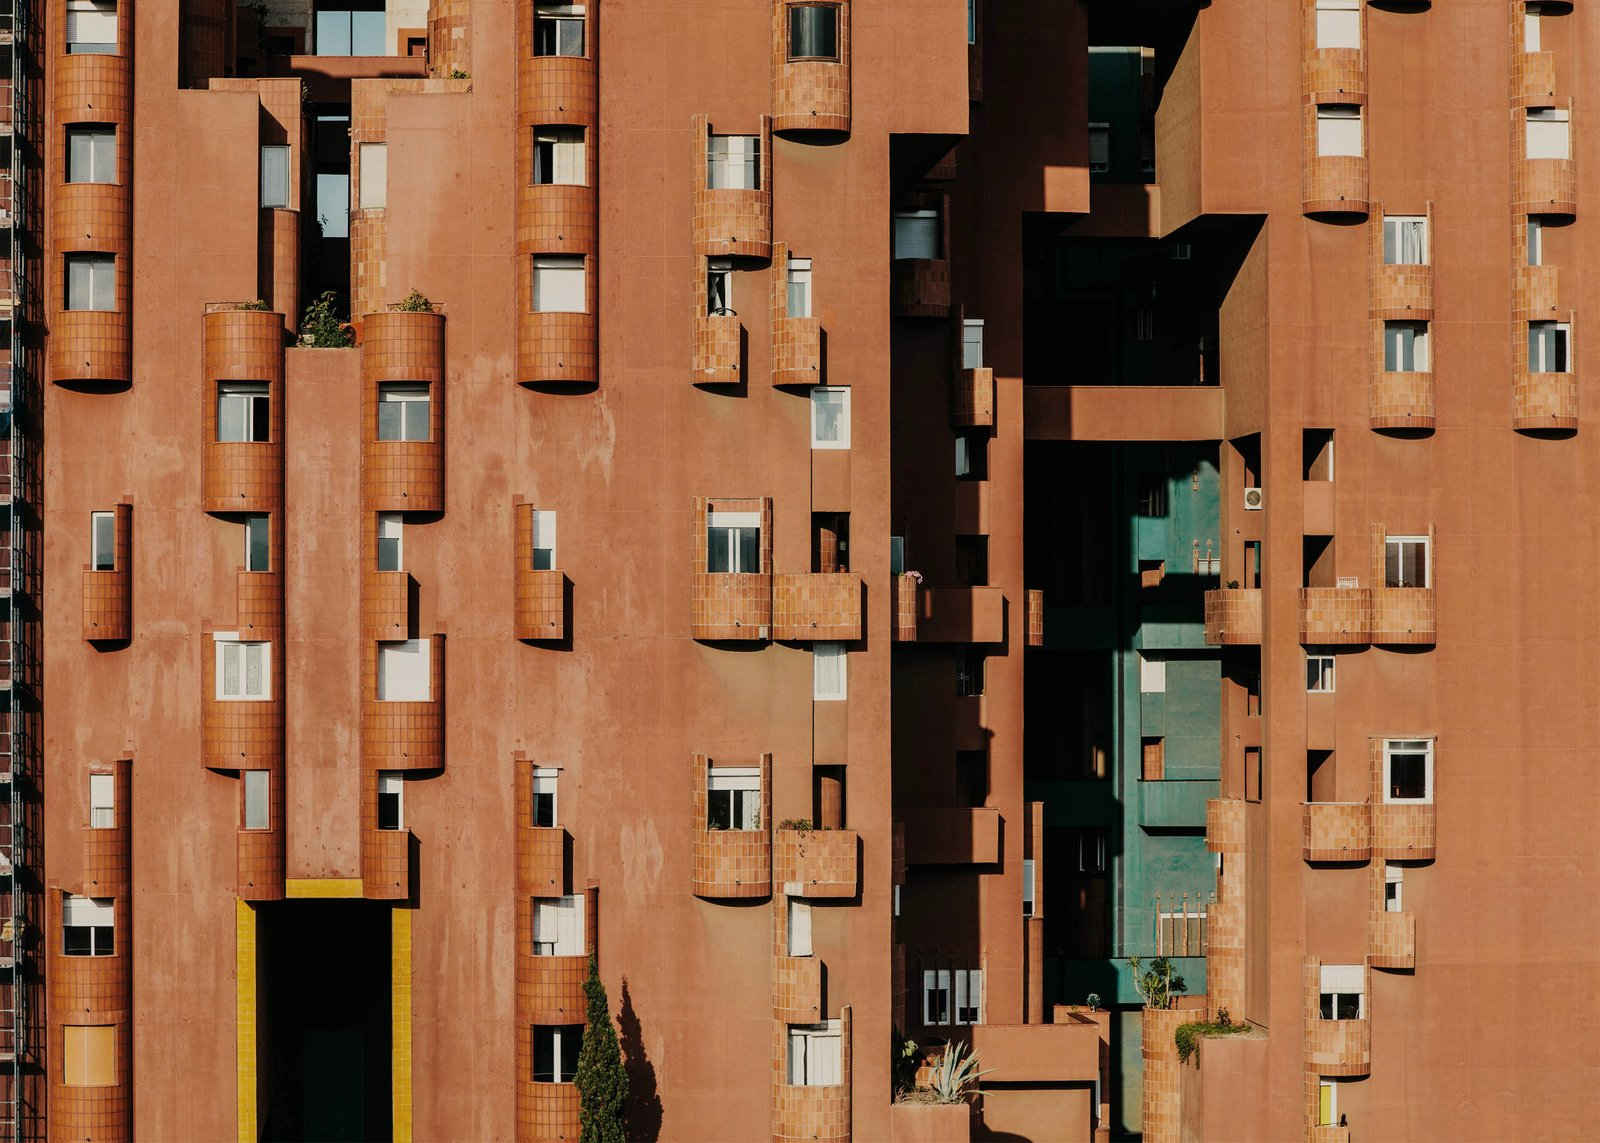 Walden 7's unsystematic layout offers an alternative to conventional apartment blocks.